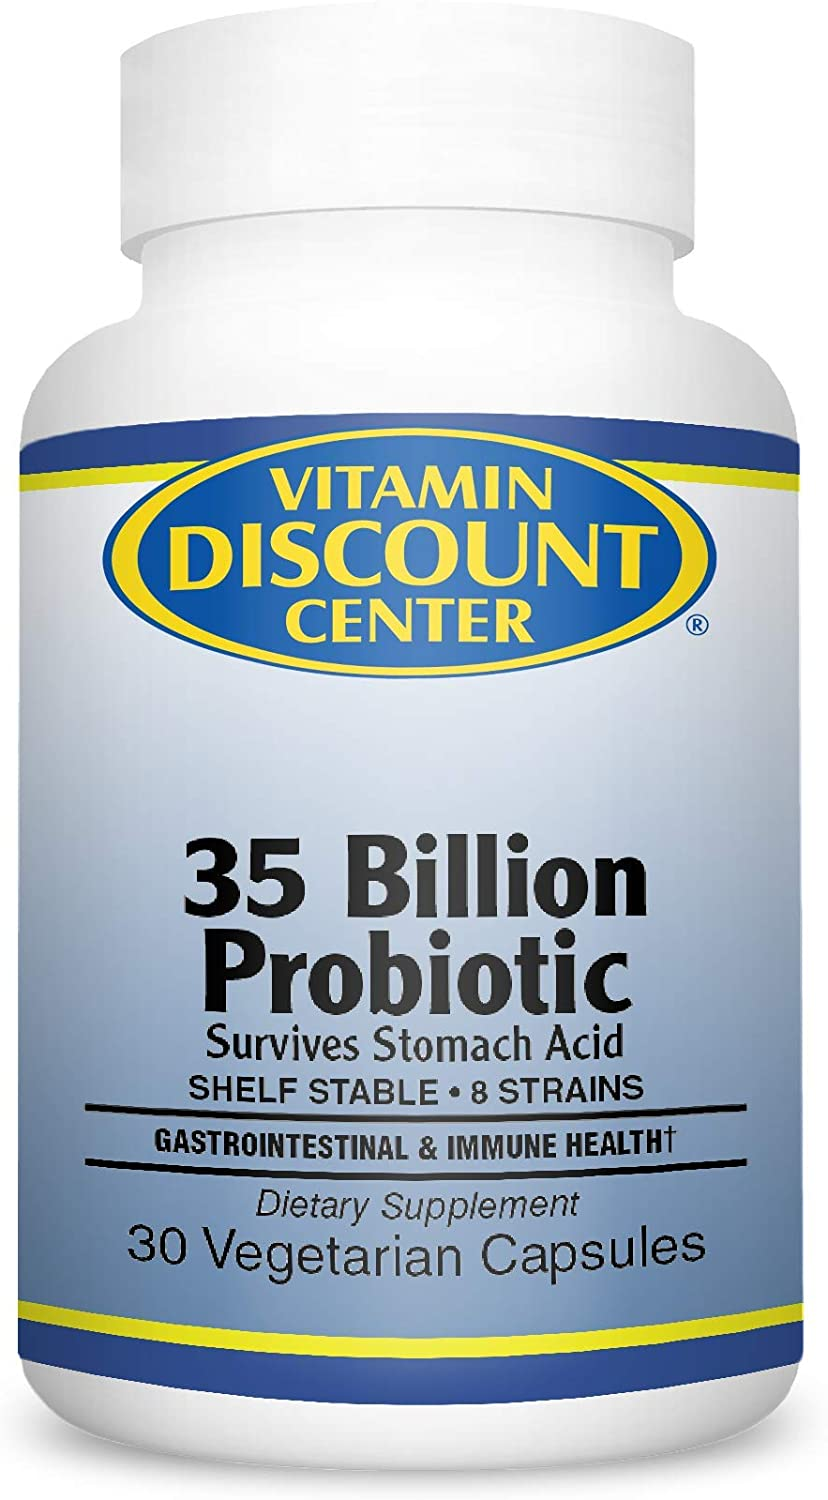 Vitamin Discount Center, Probiotic 35 Billion Dietary Supplement with Prebiotic Blend, Gastrointestinal & Immune Health, Shelf Stable, 8 strains, 30 Vegetarian Capsules